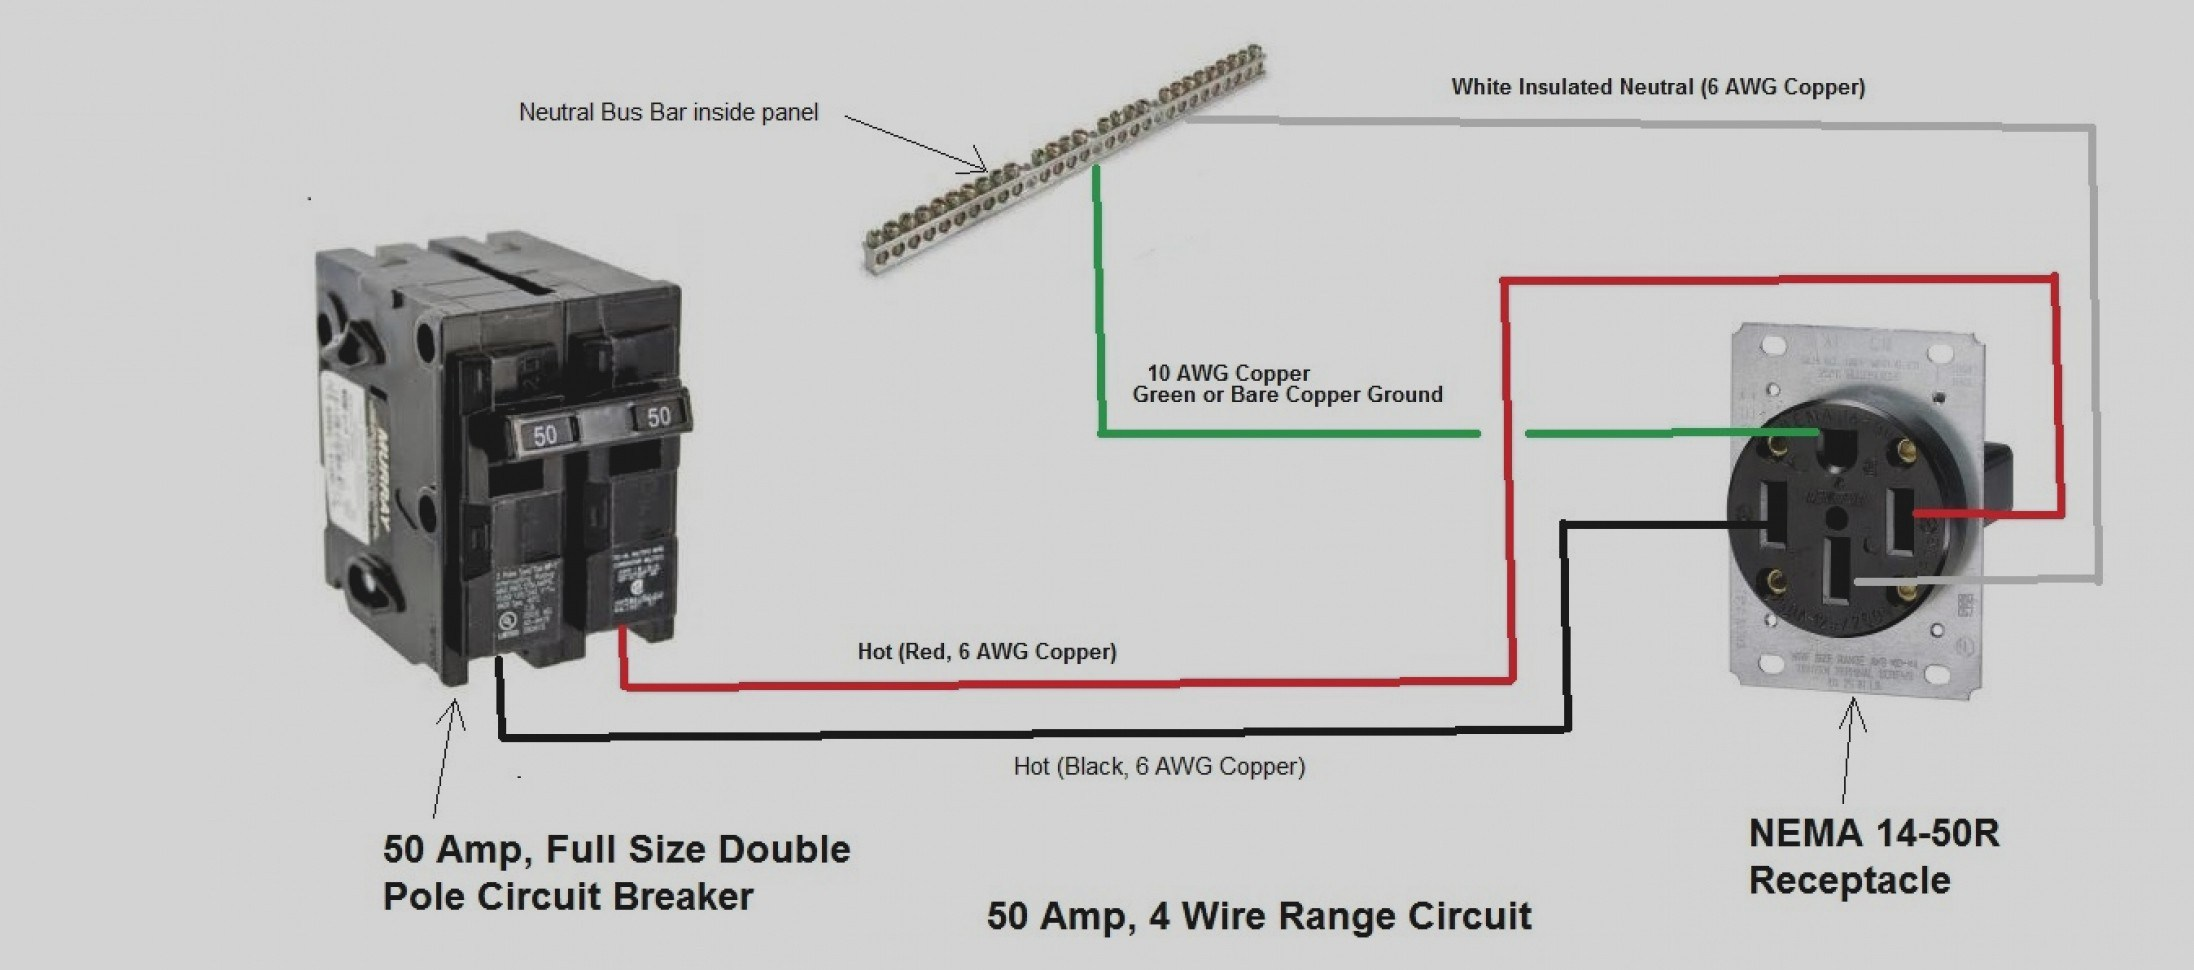 3 Wire 220 Volt Wiring Diagram : Diagram 3 Wire 220 Volt